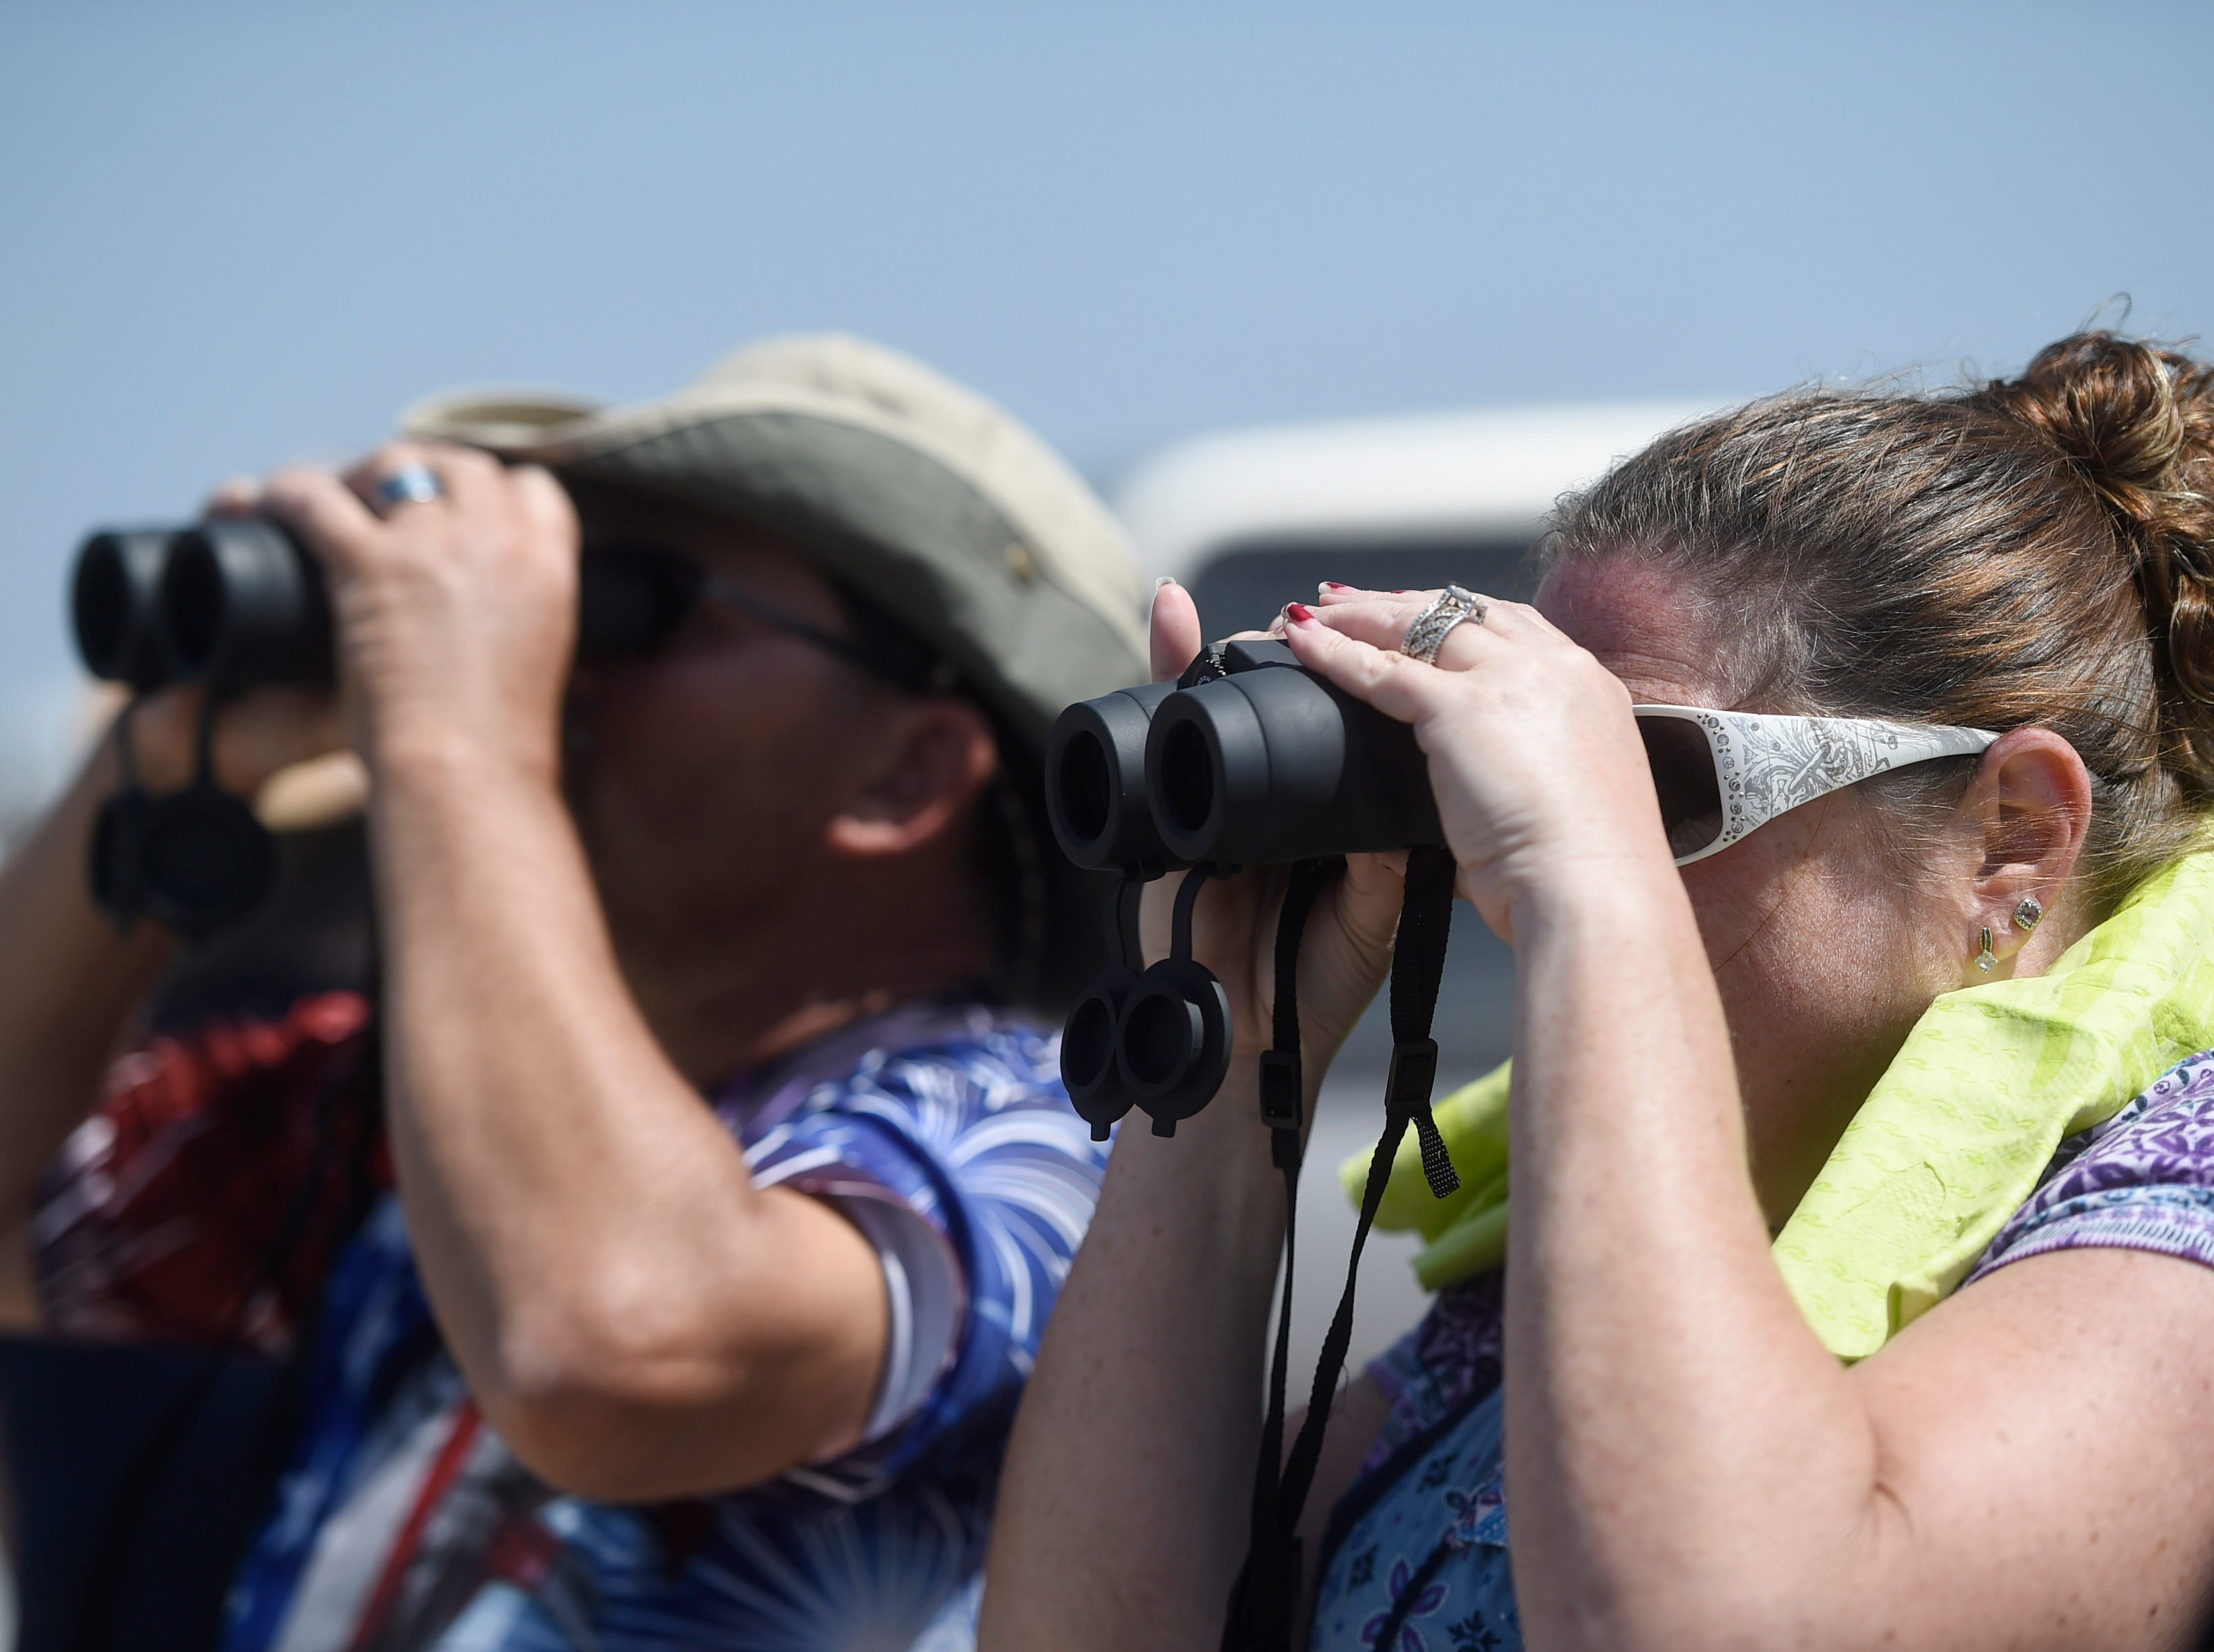 Attendees use binoculars to view the Wings Over South Texas Air Show, Saturday, April 13, 2019, at NAS Corpus Christi.